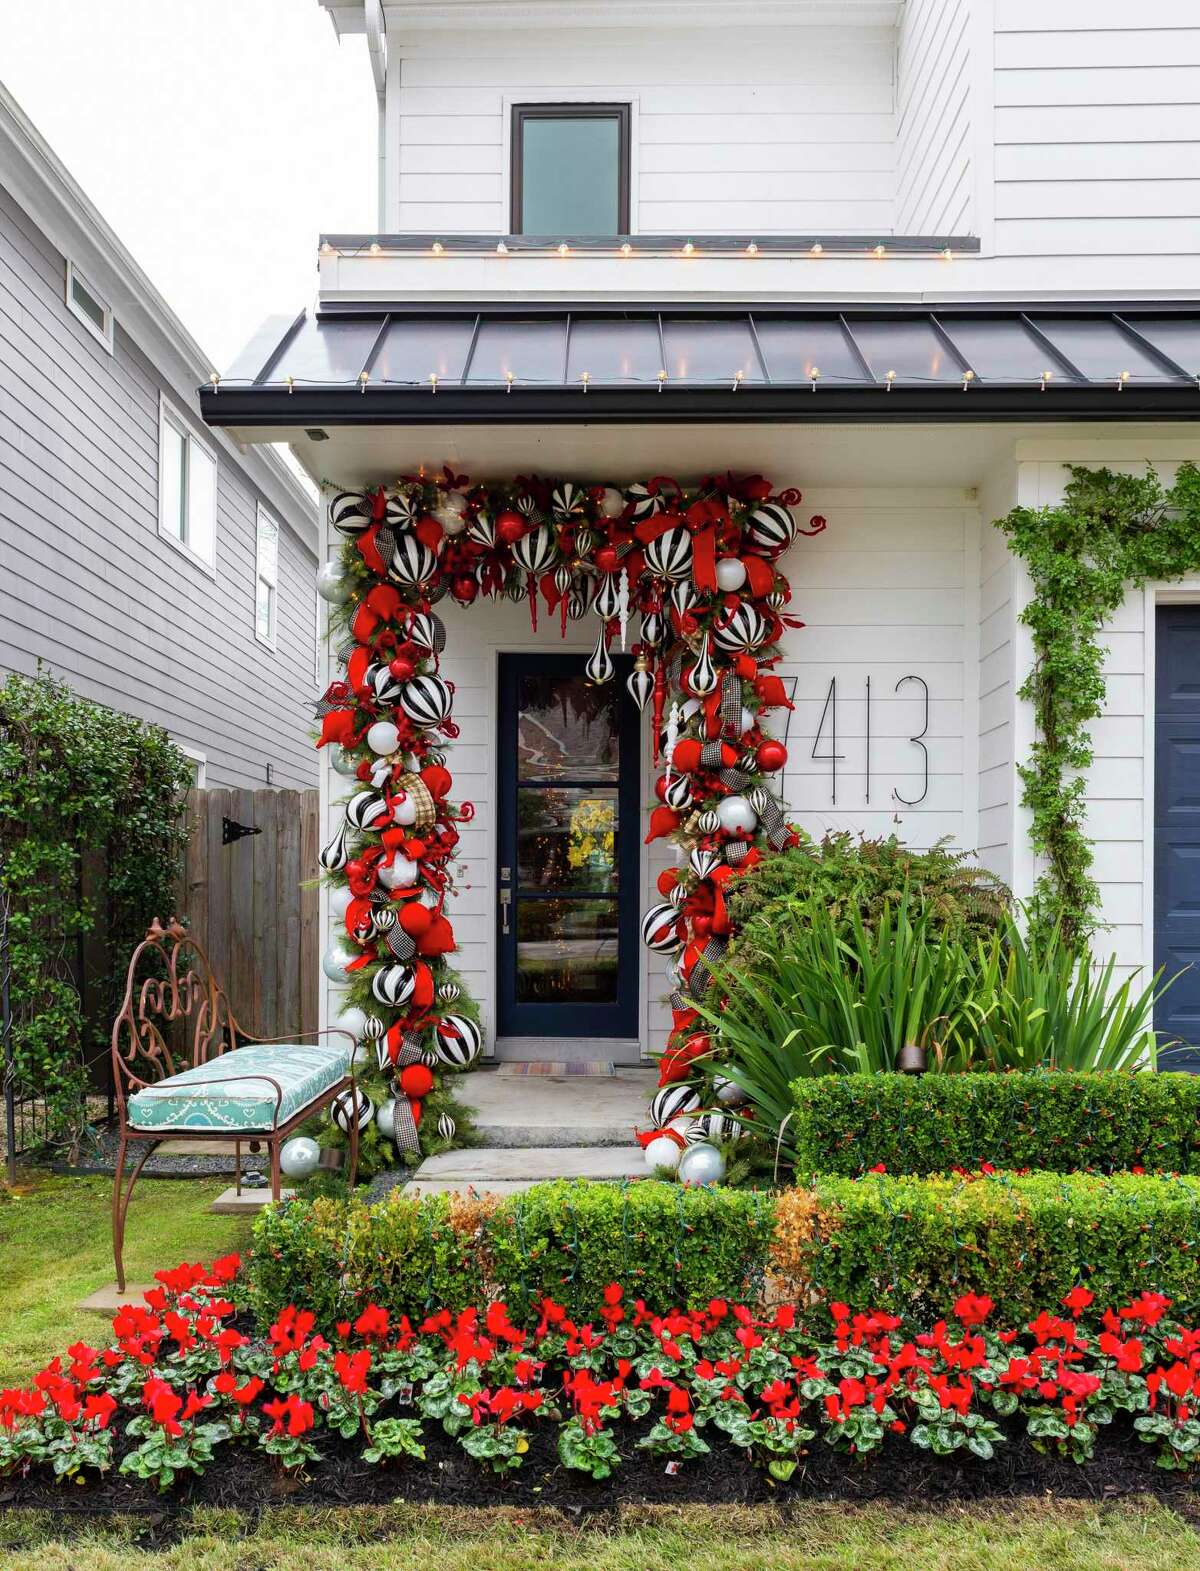 More than 300 bulbs in red or black and white hang on garland around the front door. Red cyclamen in the yard offer complementary holiday color.